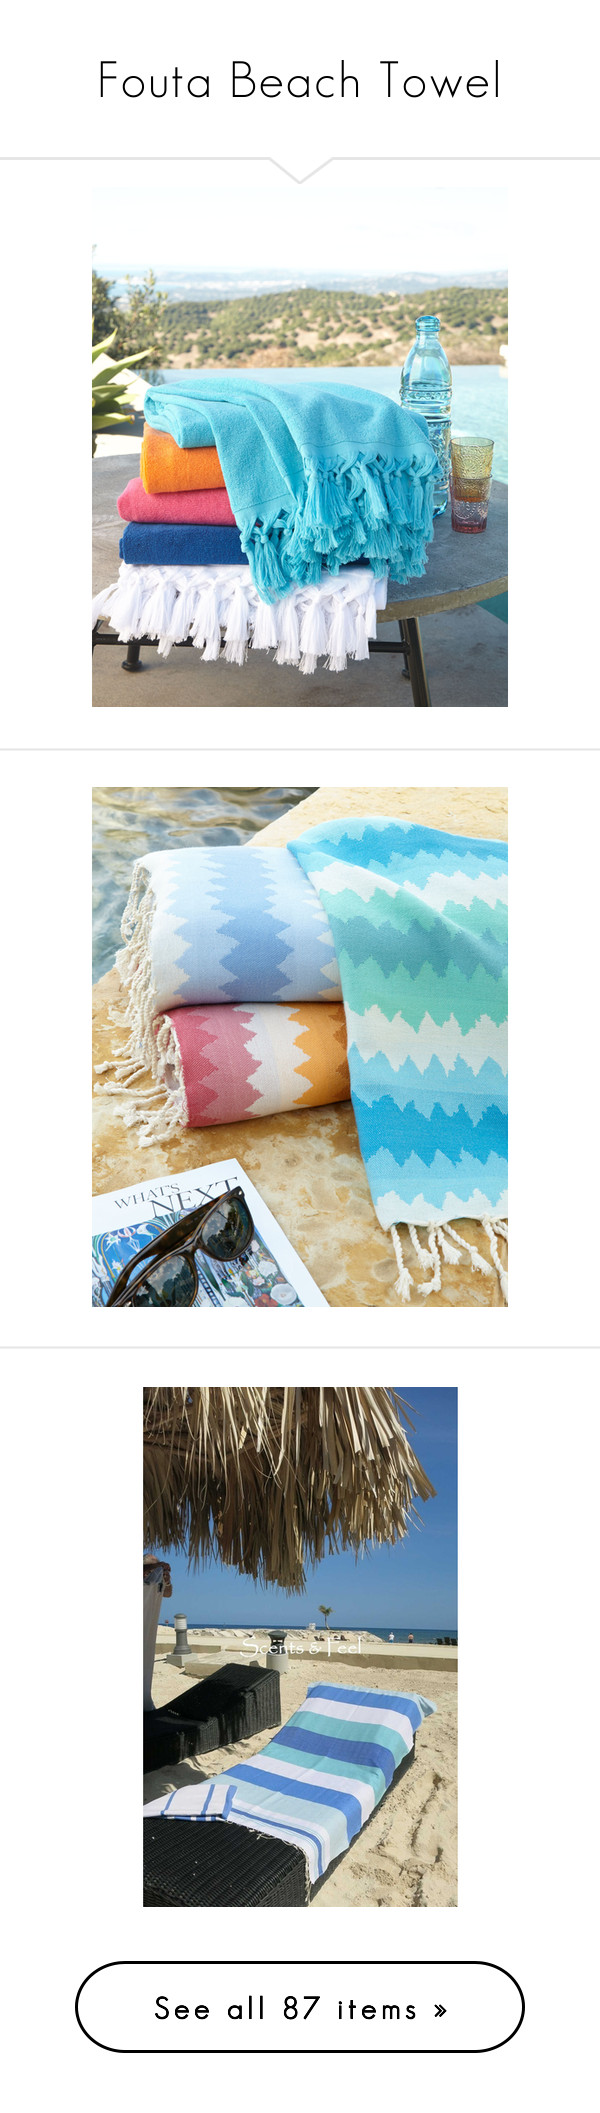 """""""Fouta Beach Towel"""" by sylandrya ❤ liked on Polyvore featuring home, bed & bath, bath, beach towels, beach, striped beach towels, stripe beach towel, blue, jacquard beach towels and blue beach towel"""